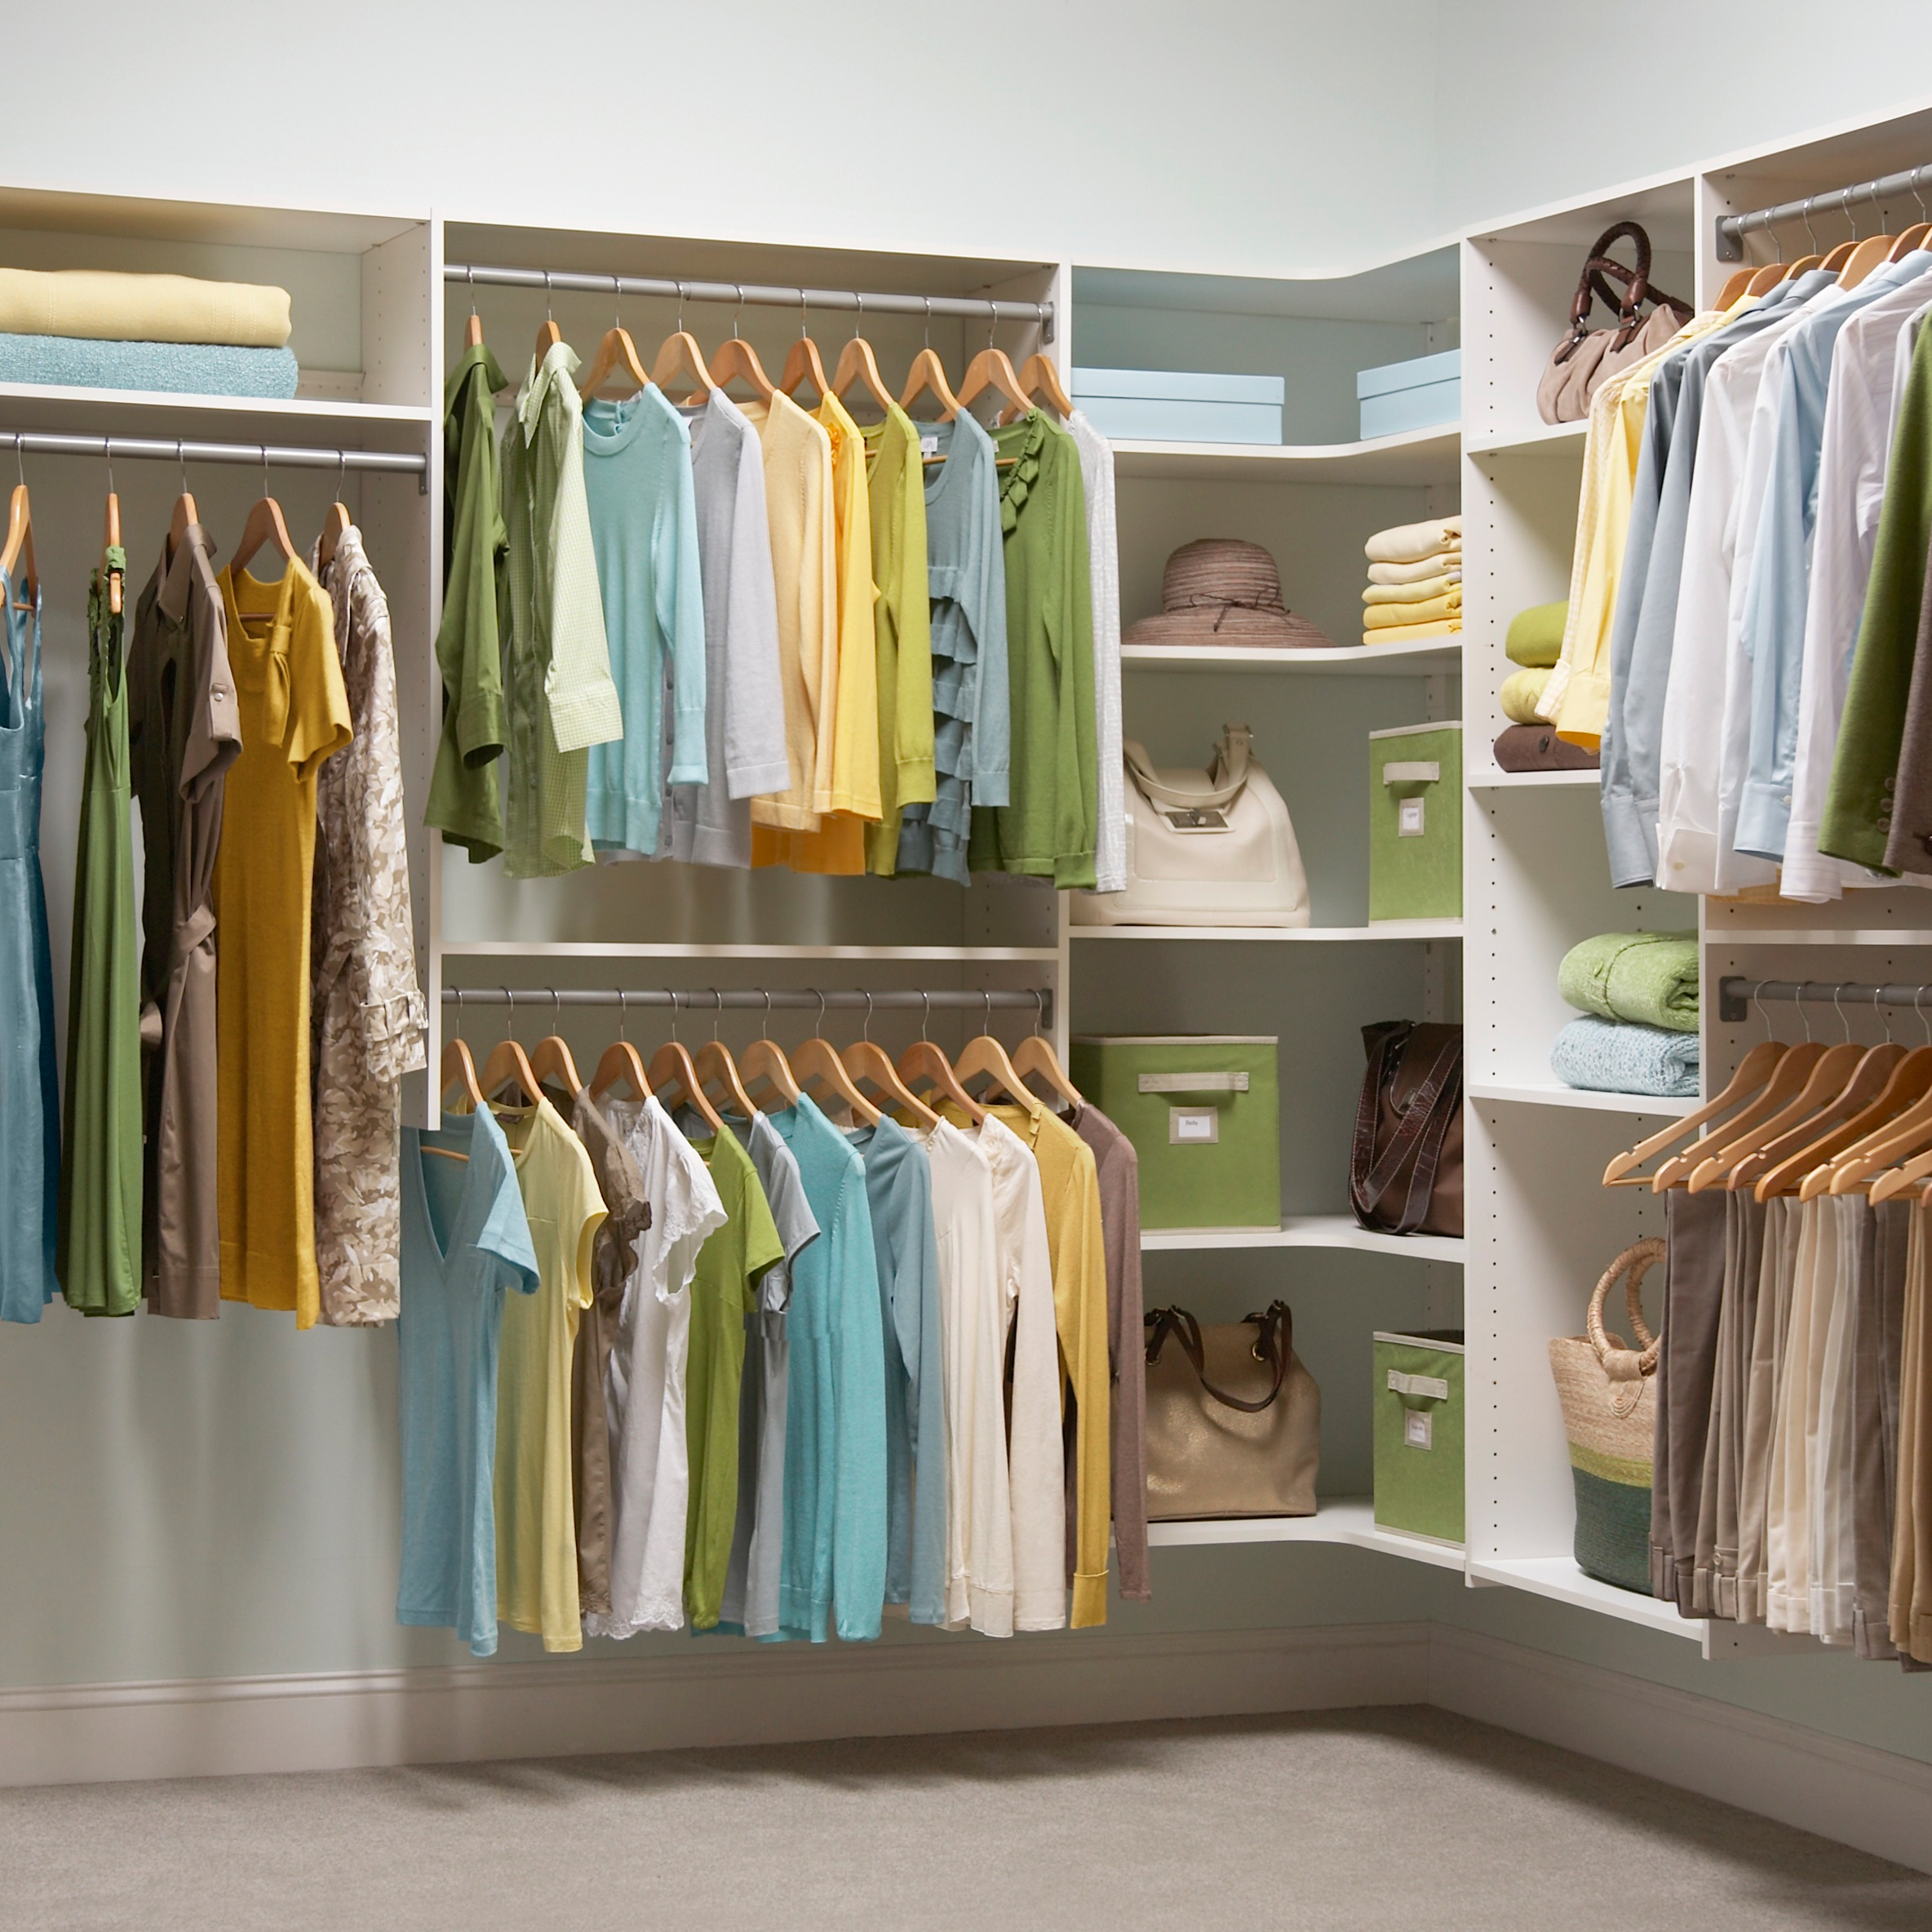 closet organization made simple by martha stewart living at the home depot closet system - Closet Designs Home Depot